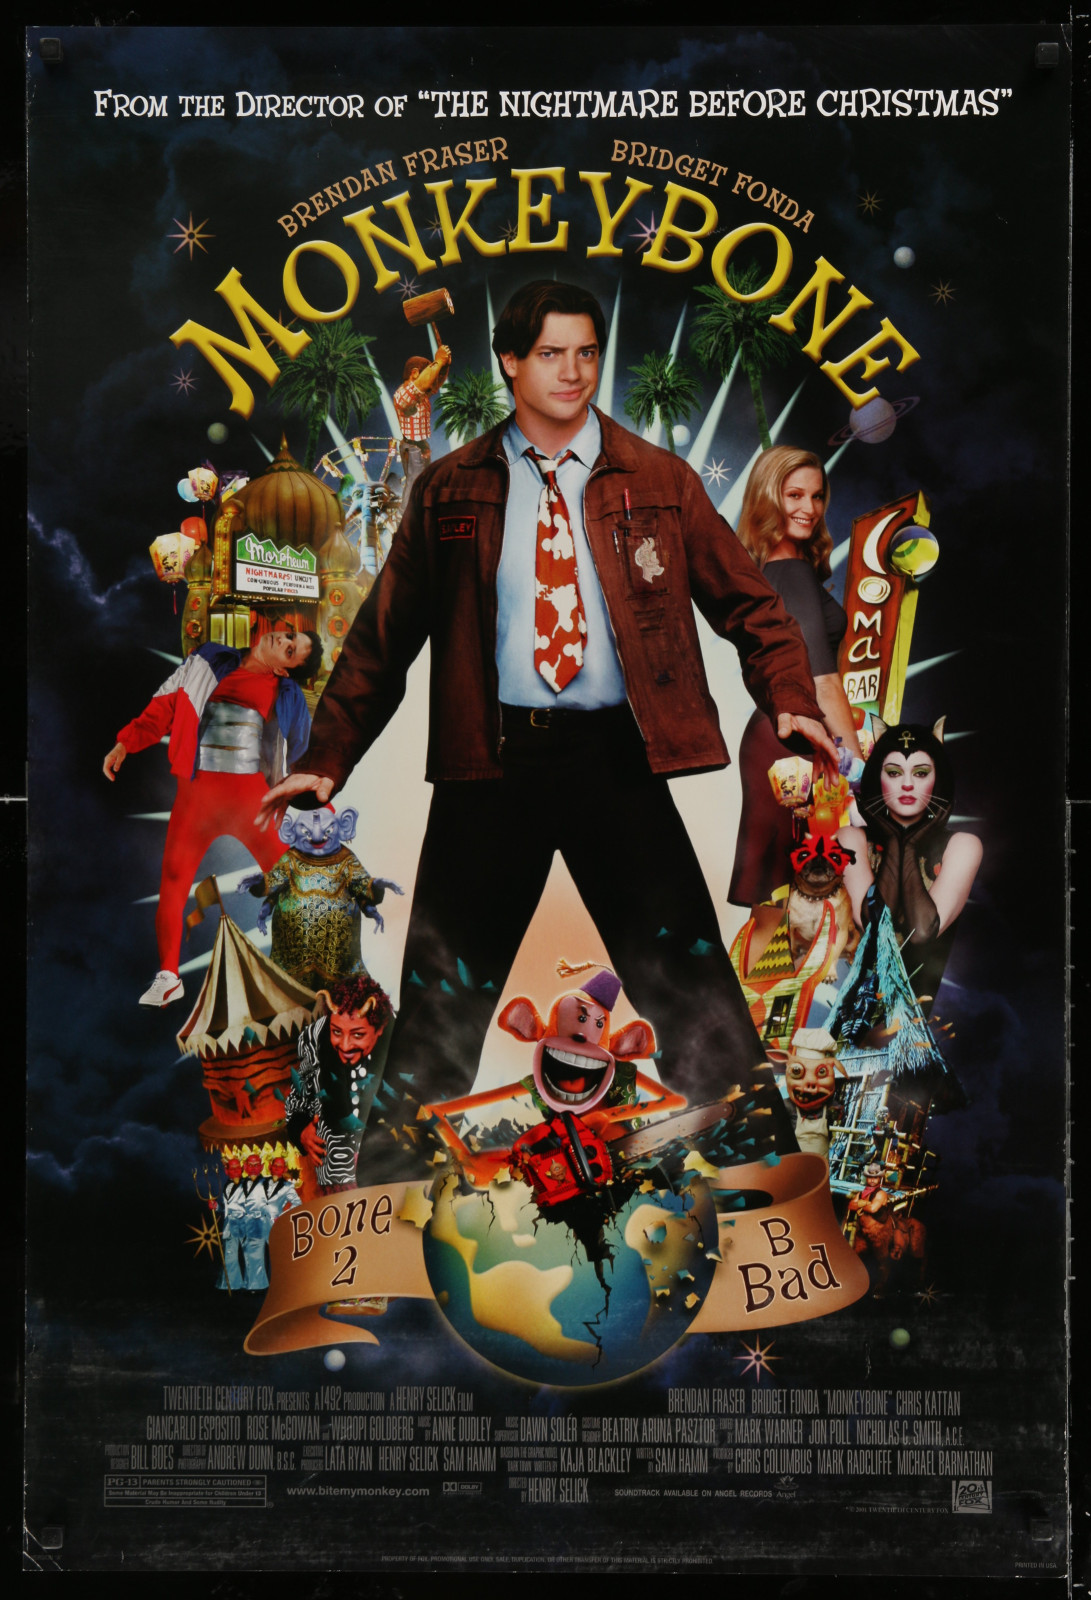 Monkey Bone 2A438 A Part Of A Lot 18 Unfolded Double-Sided 27X40 Mostly Comedy One-Sheets '90S-00S Great Movie Images!